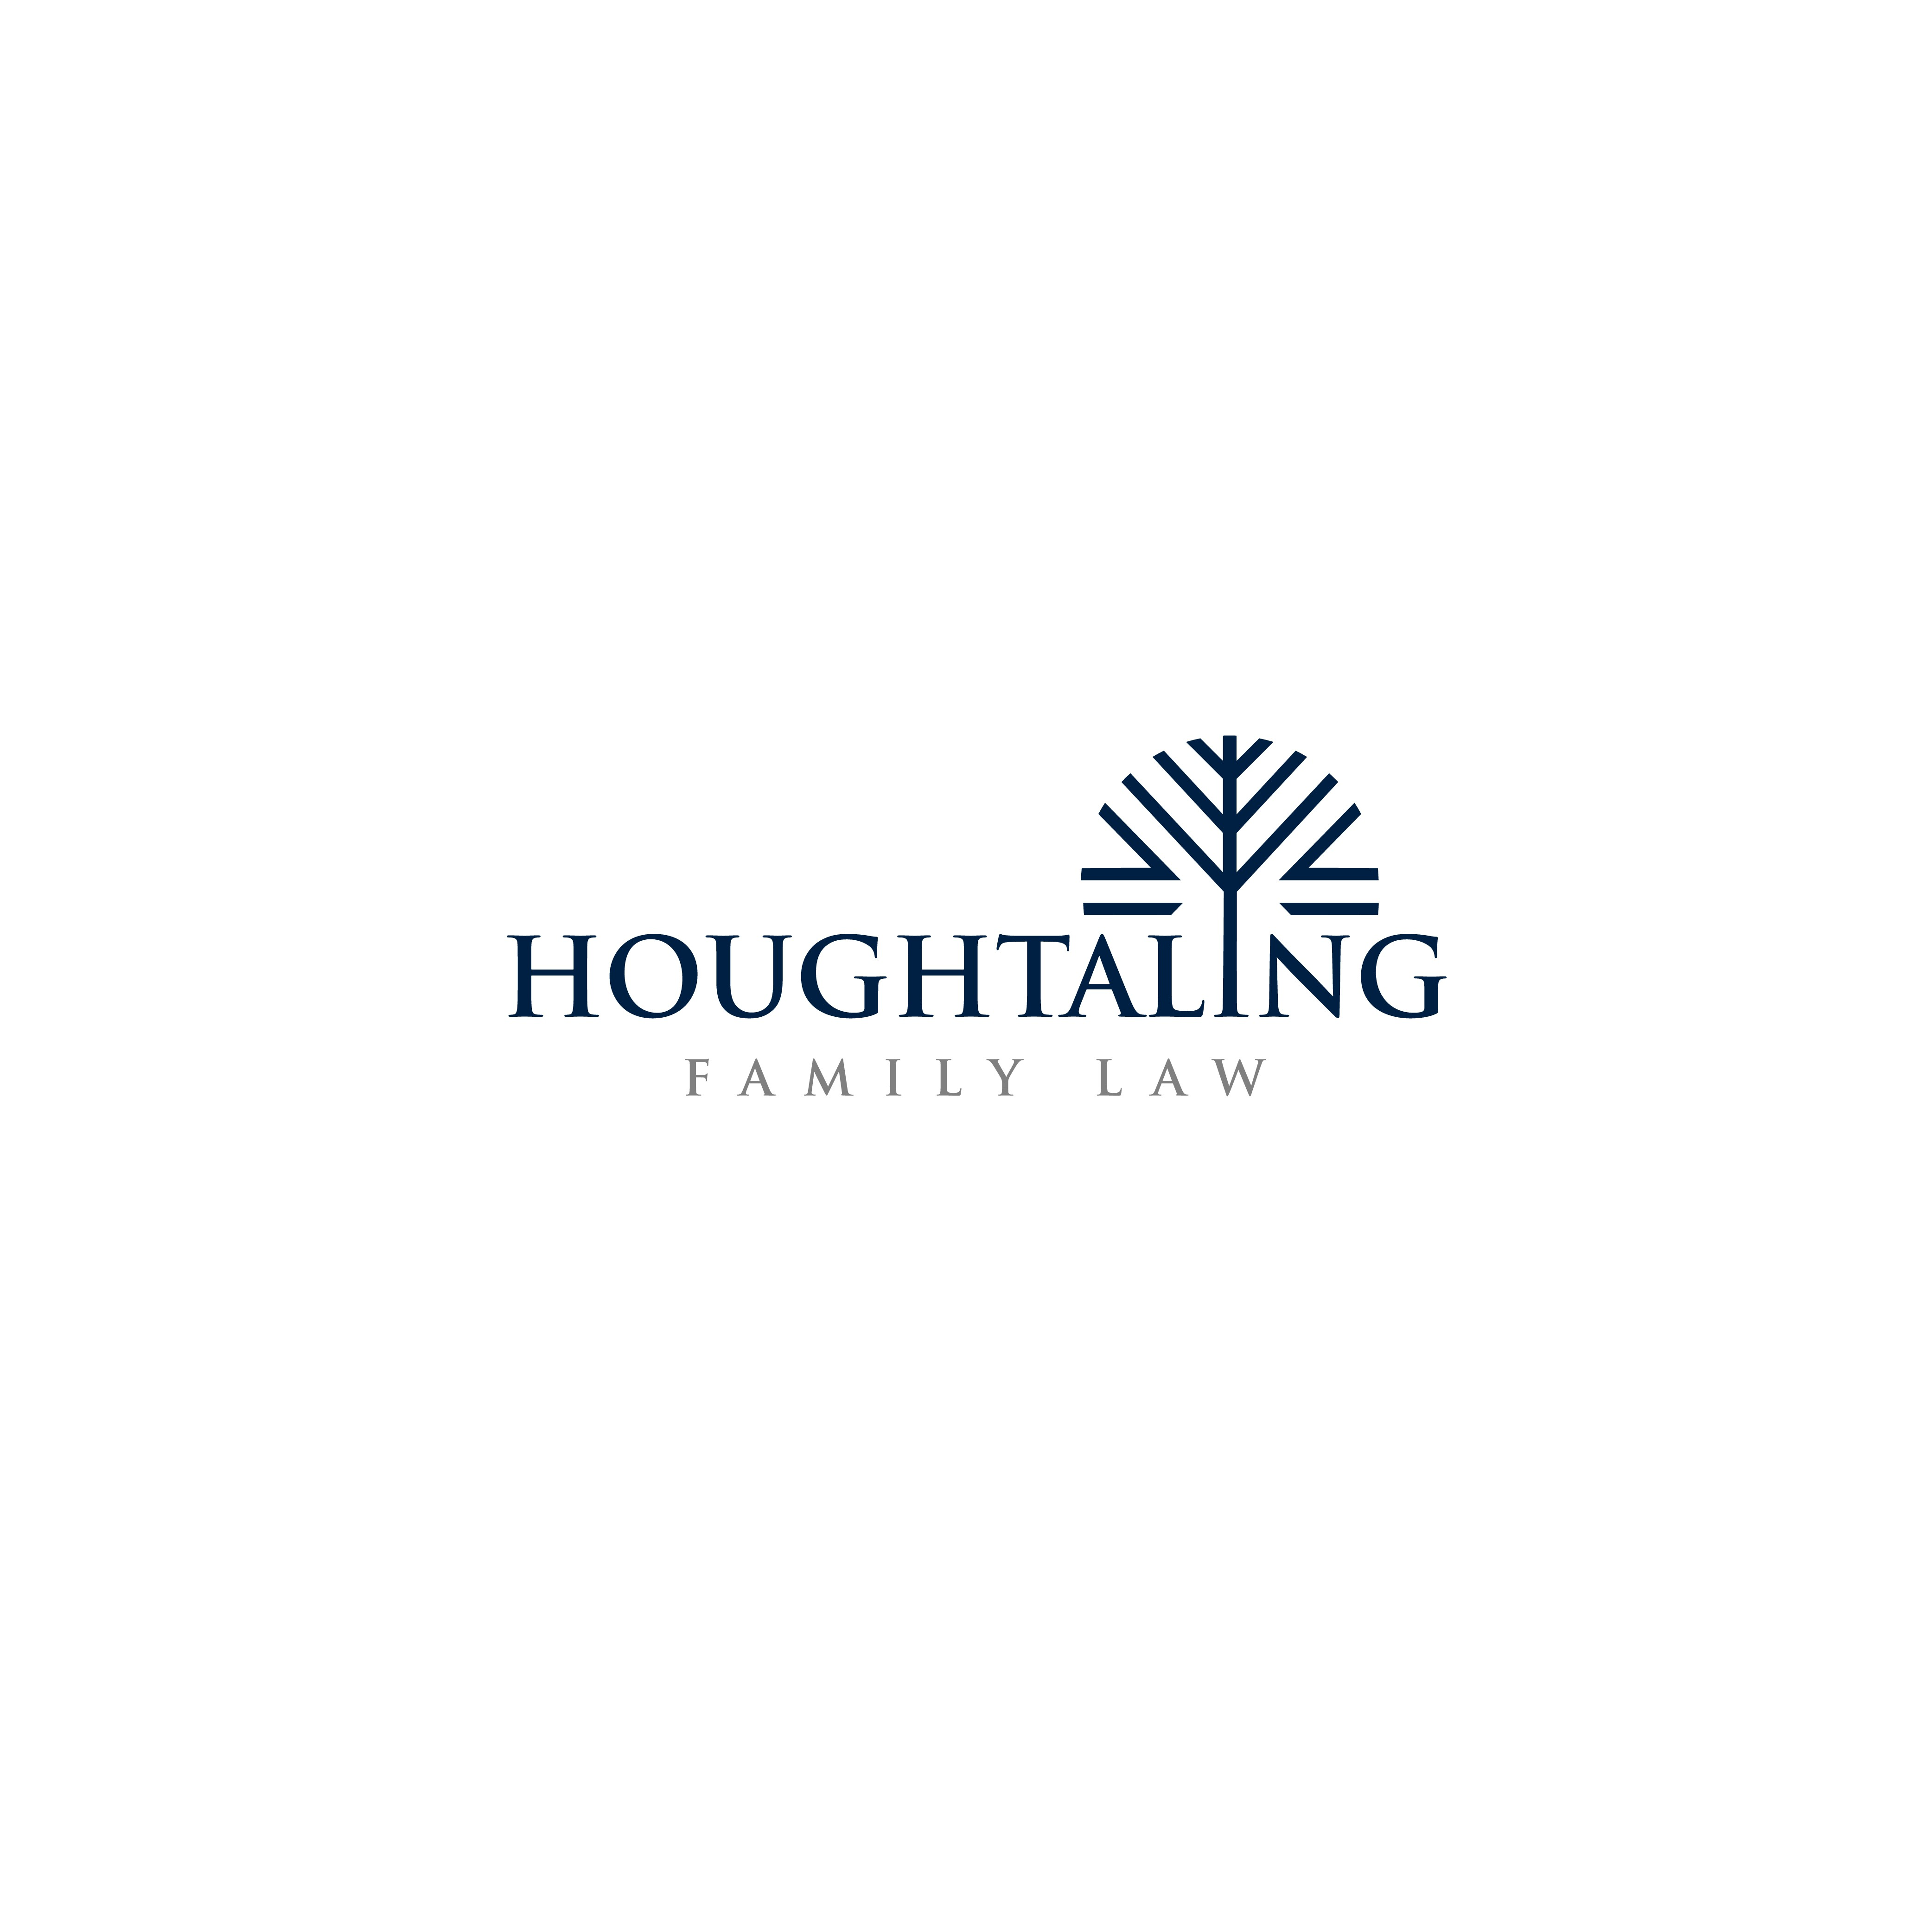 Design a strong creative law firm logo for Houghtaling Family Law with tree concept.